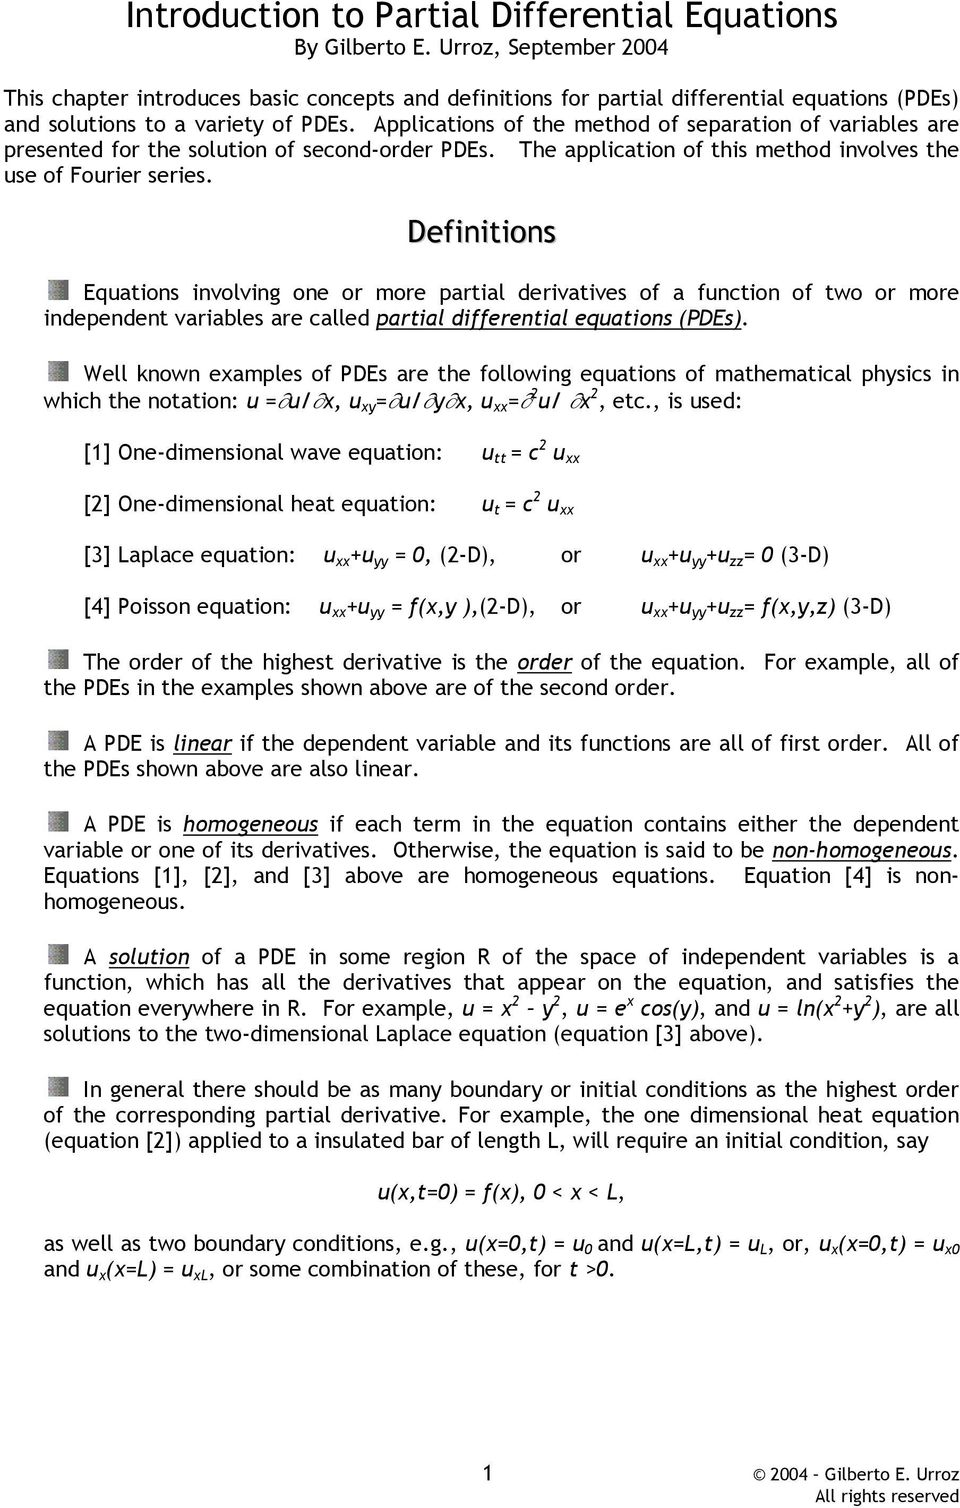 Introduction to Partial Differential Equations By Gilberto E